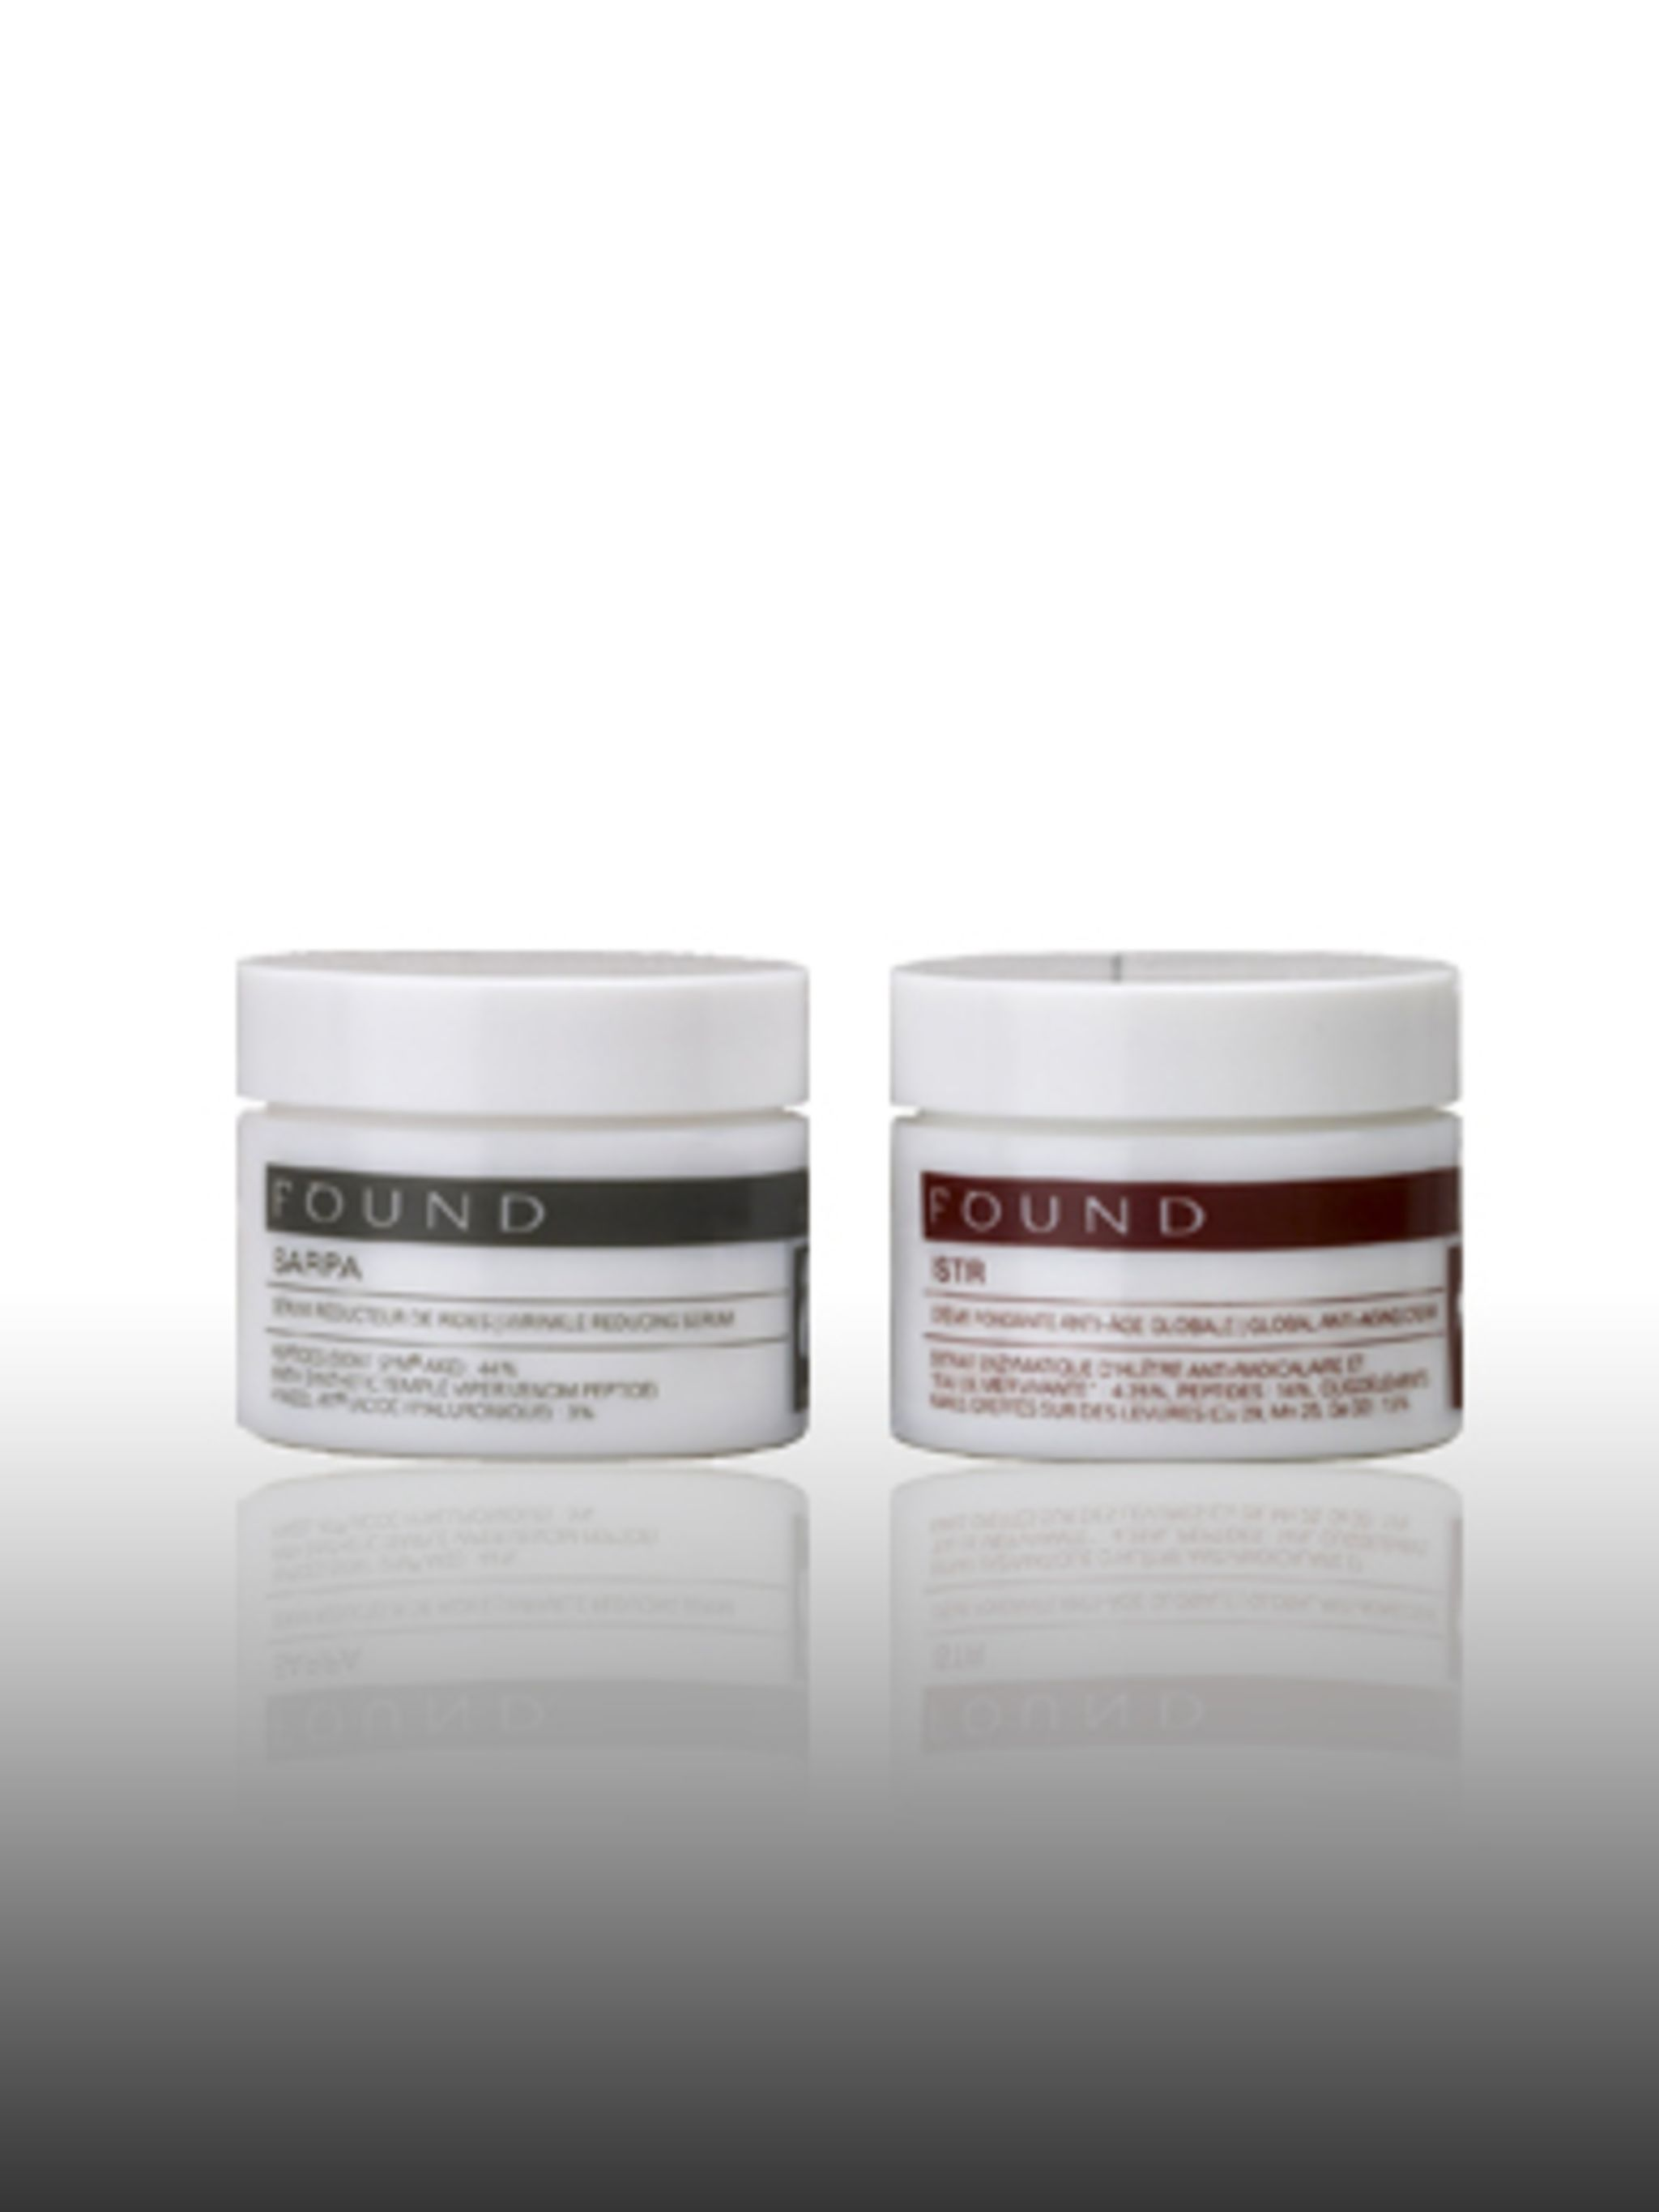 """<p>Istr, £98 by Found at <a href=""""http://www.zuneta.com/"""">Zuneta</a> Found is a unisex skincare brand that specialises in natural anti-ageing products. Founder, Eric Cosson, is a self-confessed science addict who takes inspiration for his hi-tech skincare"""